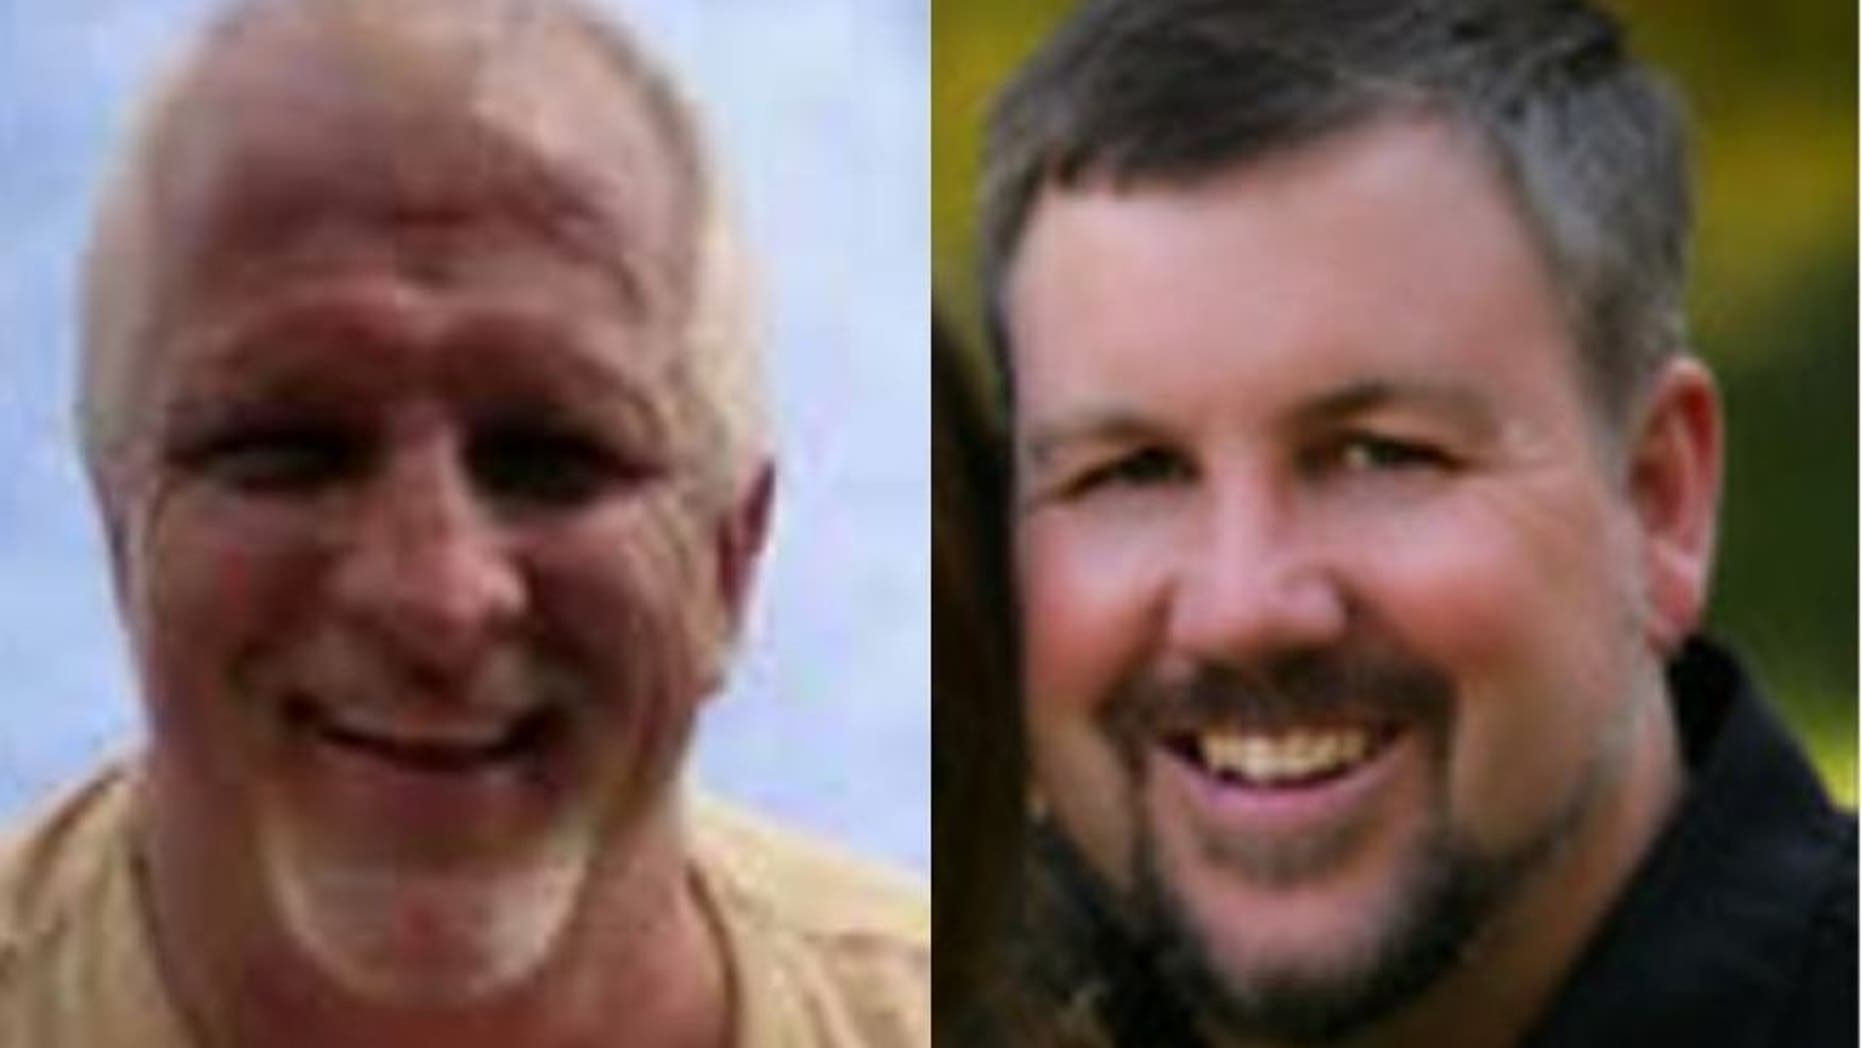 Harold Nichols, (l.), and Randy Hentzel, (r.), were found murdered April 30 in a rugged and remote area of Jamaica. (TEAMS for Medical Missions)